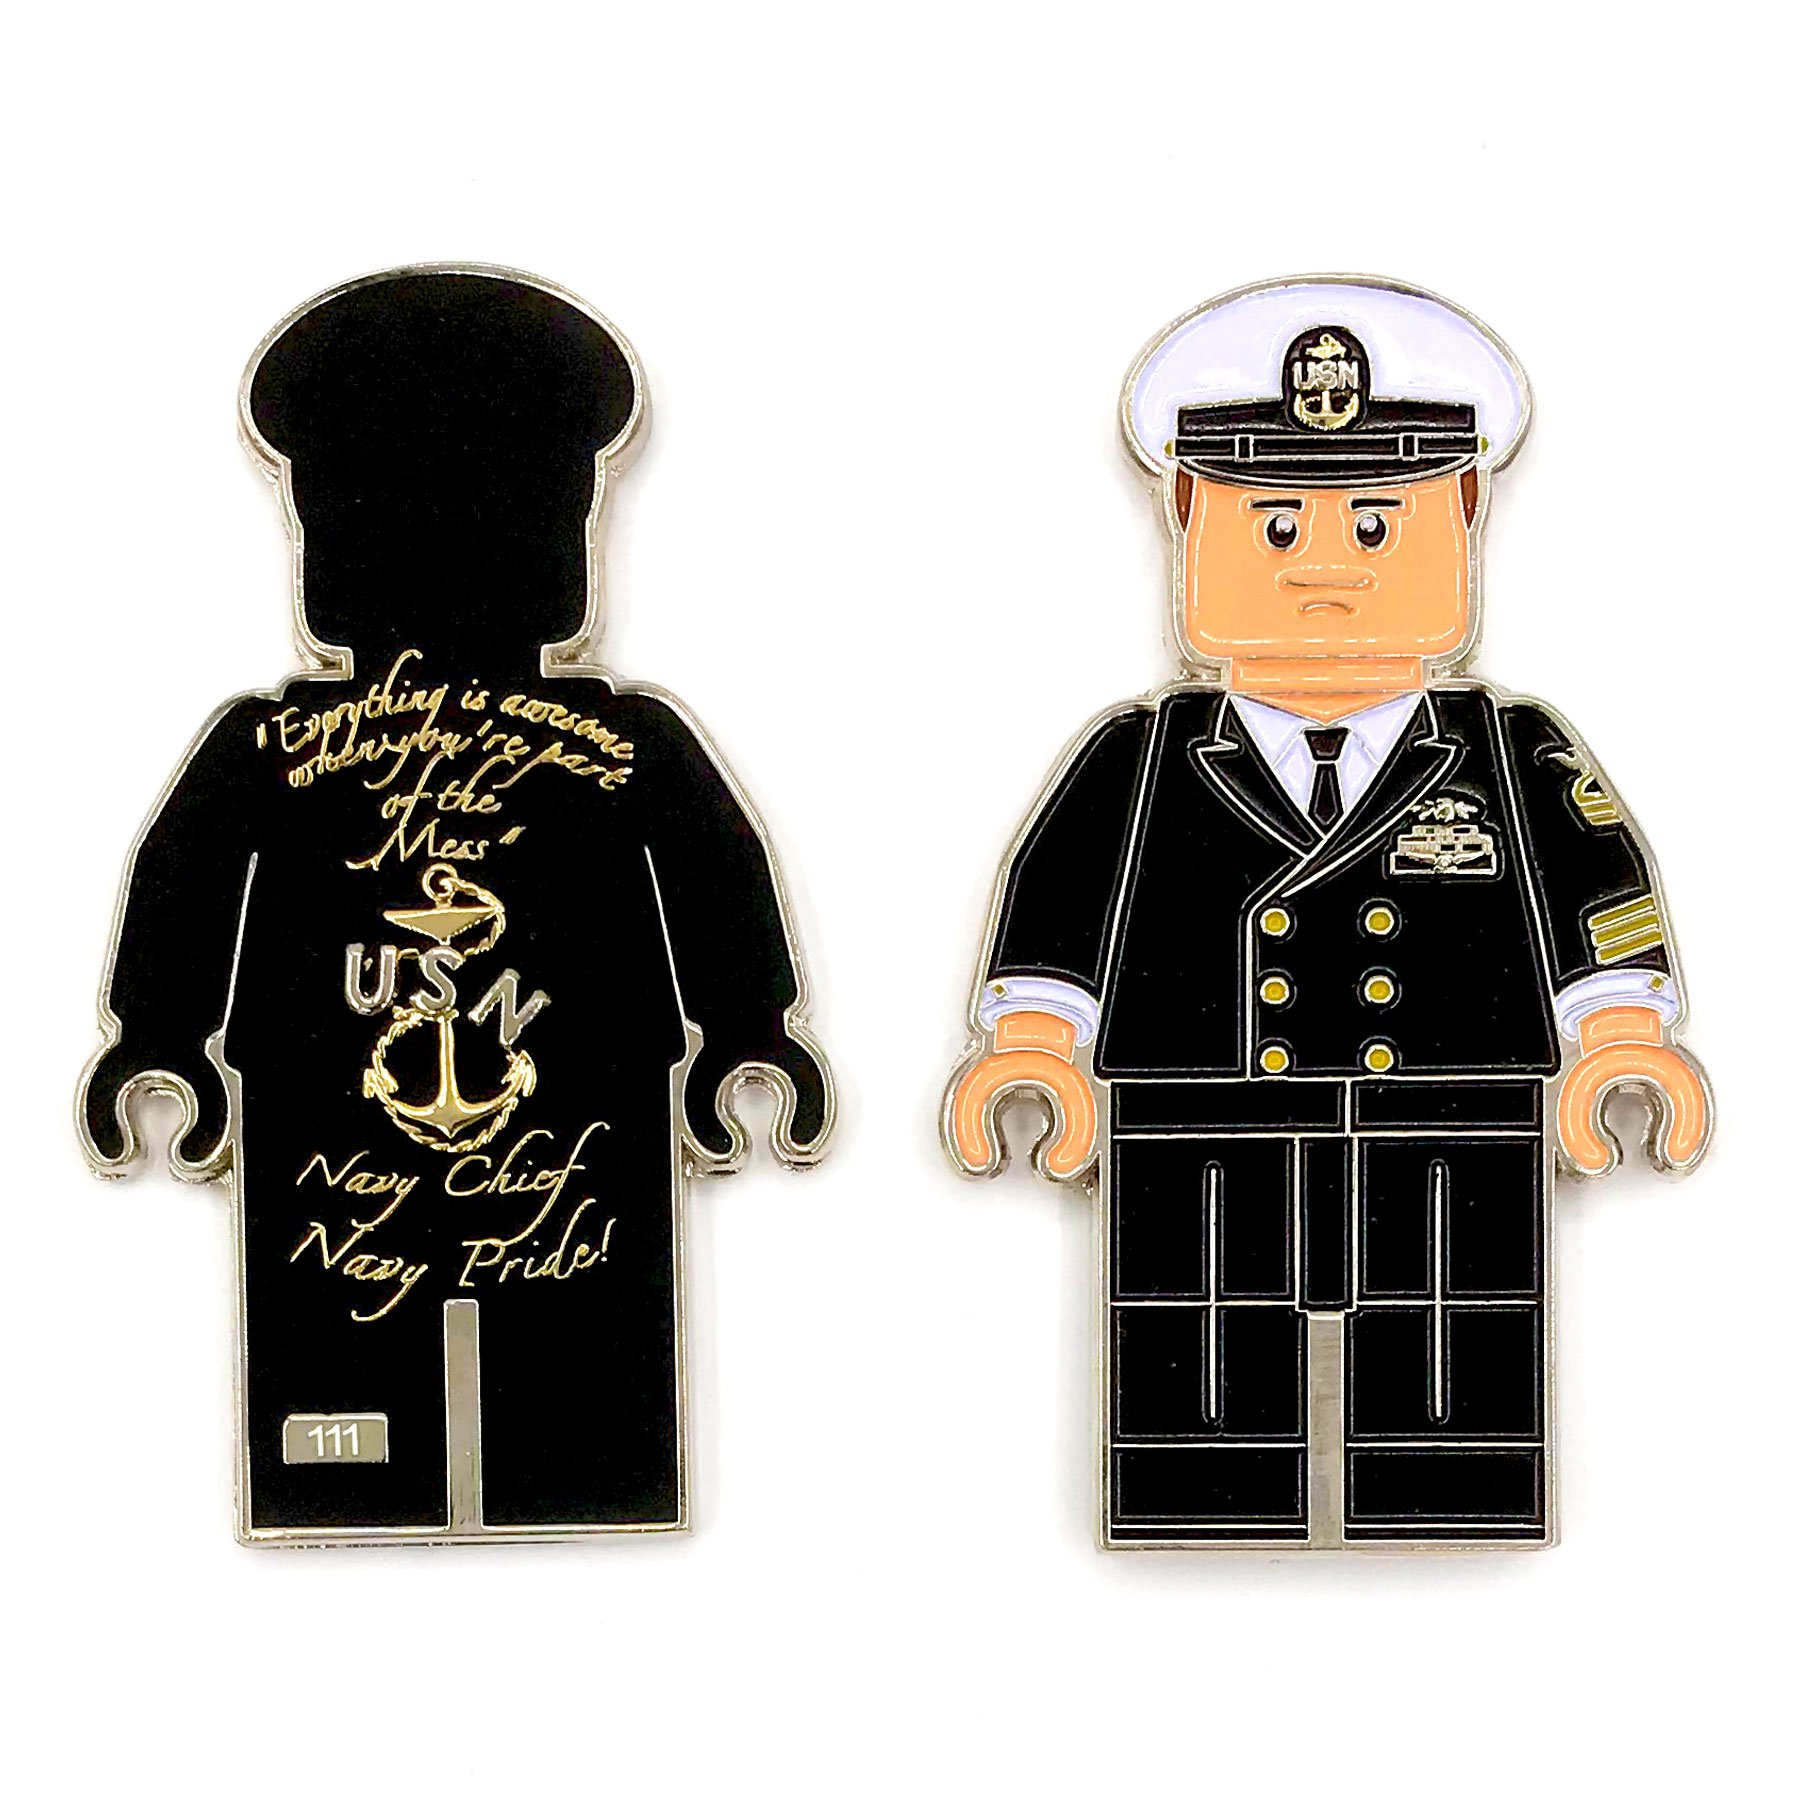 "US Navy Lego Male Officer in Black Uniform, Chief Petty Officer (CPO) Chief Dress Mess ""Navy Chief, Navy Pride"" Challenge Coin M-BLK"